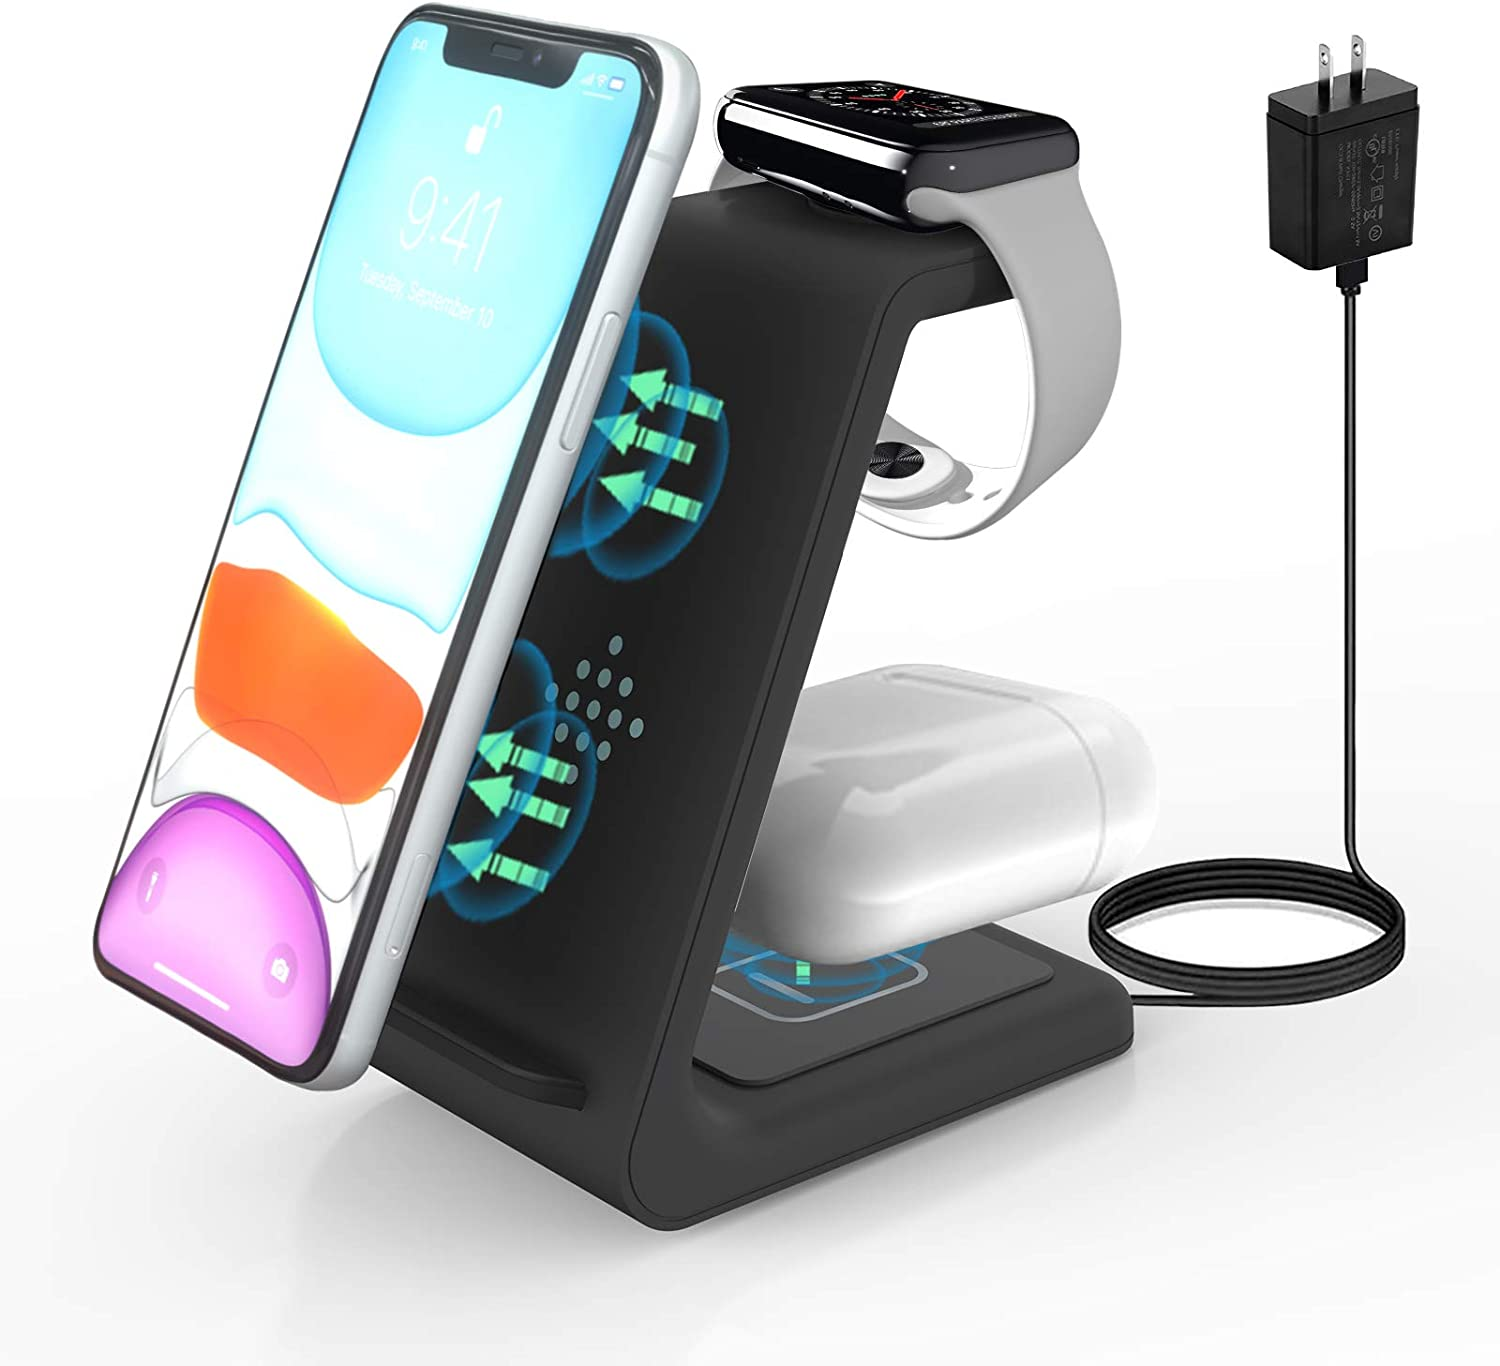 Wireless Charger,ZHIKE 3 in 1 Qi-Certified 10W Fast Charging Station for Apple iWatch Series 6/5/4/3/2/1,AirPods,Wireless Charging Stand Compatible with iPhone 11 Series/XS MAX/XR/Samsung(With A Plug)